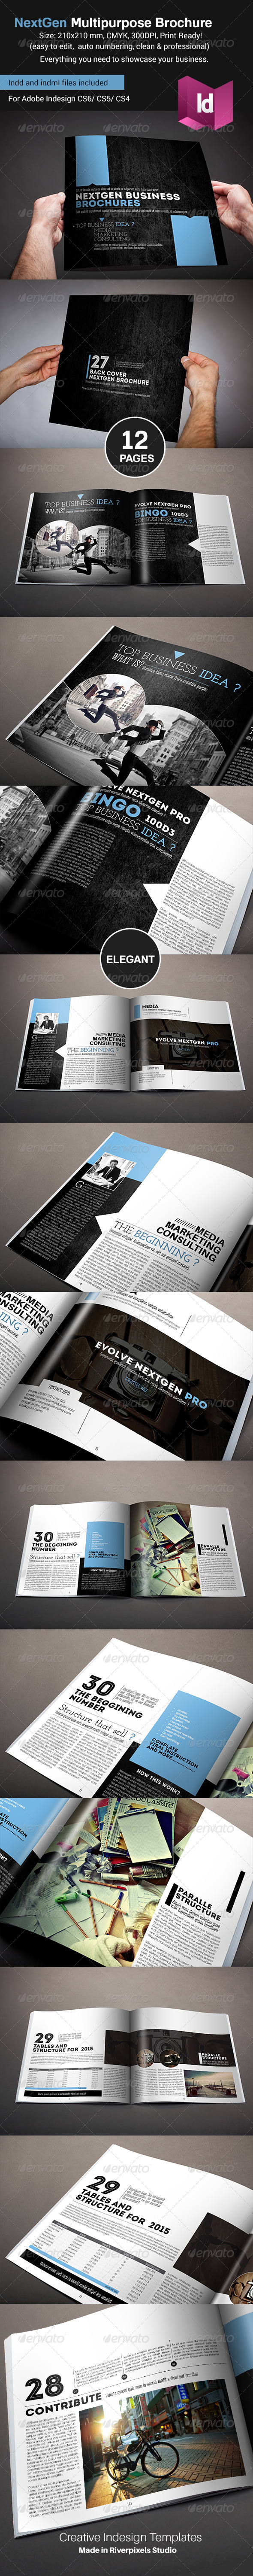 GraphicRiver NextGen Brochure Square Version 8590863